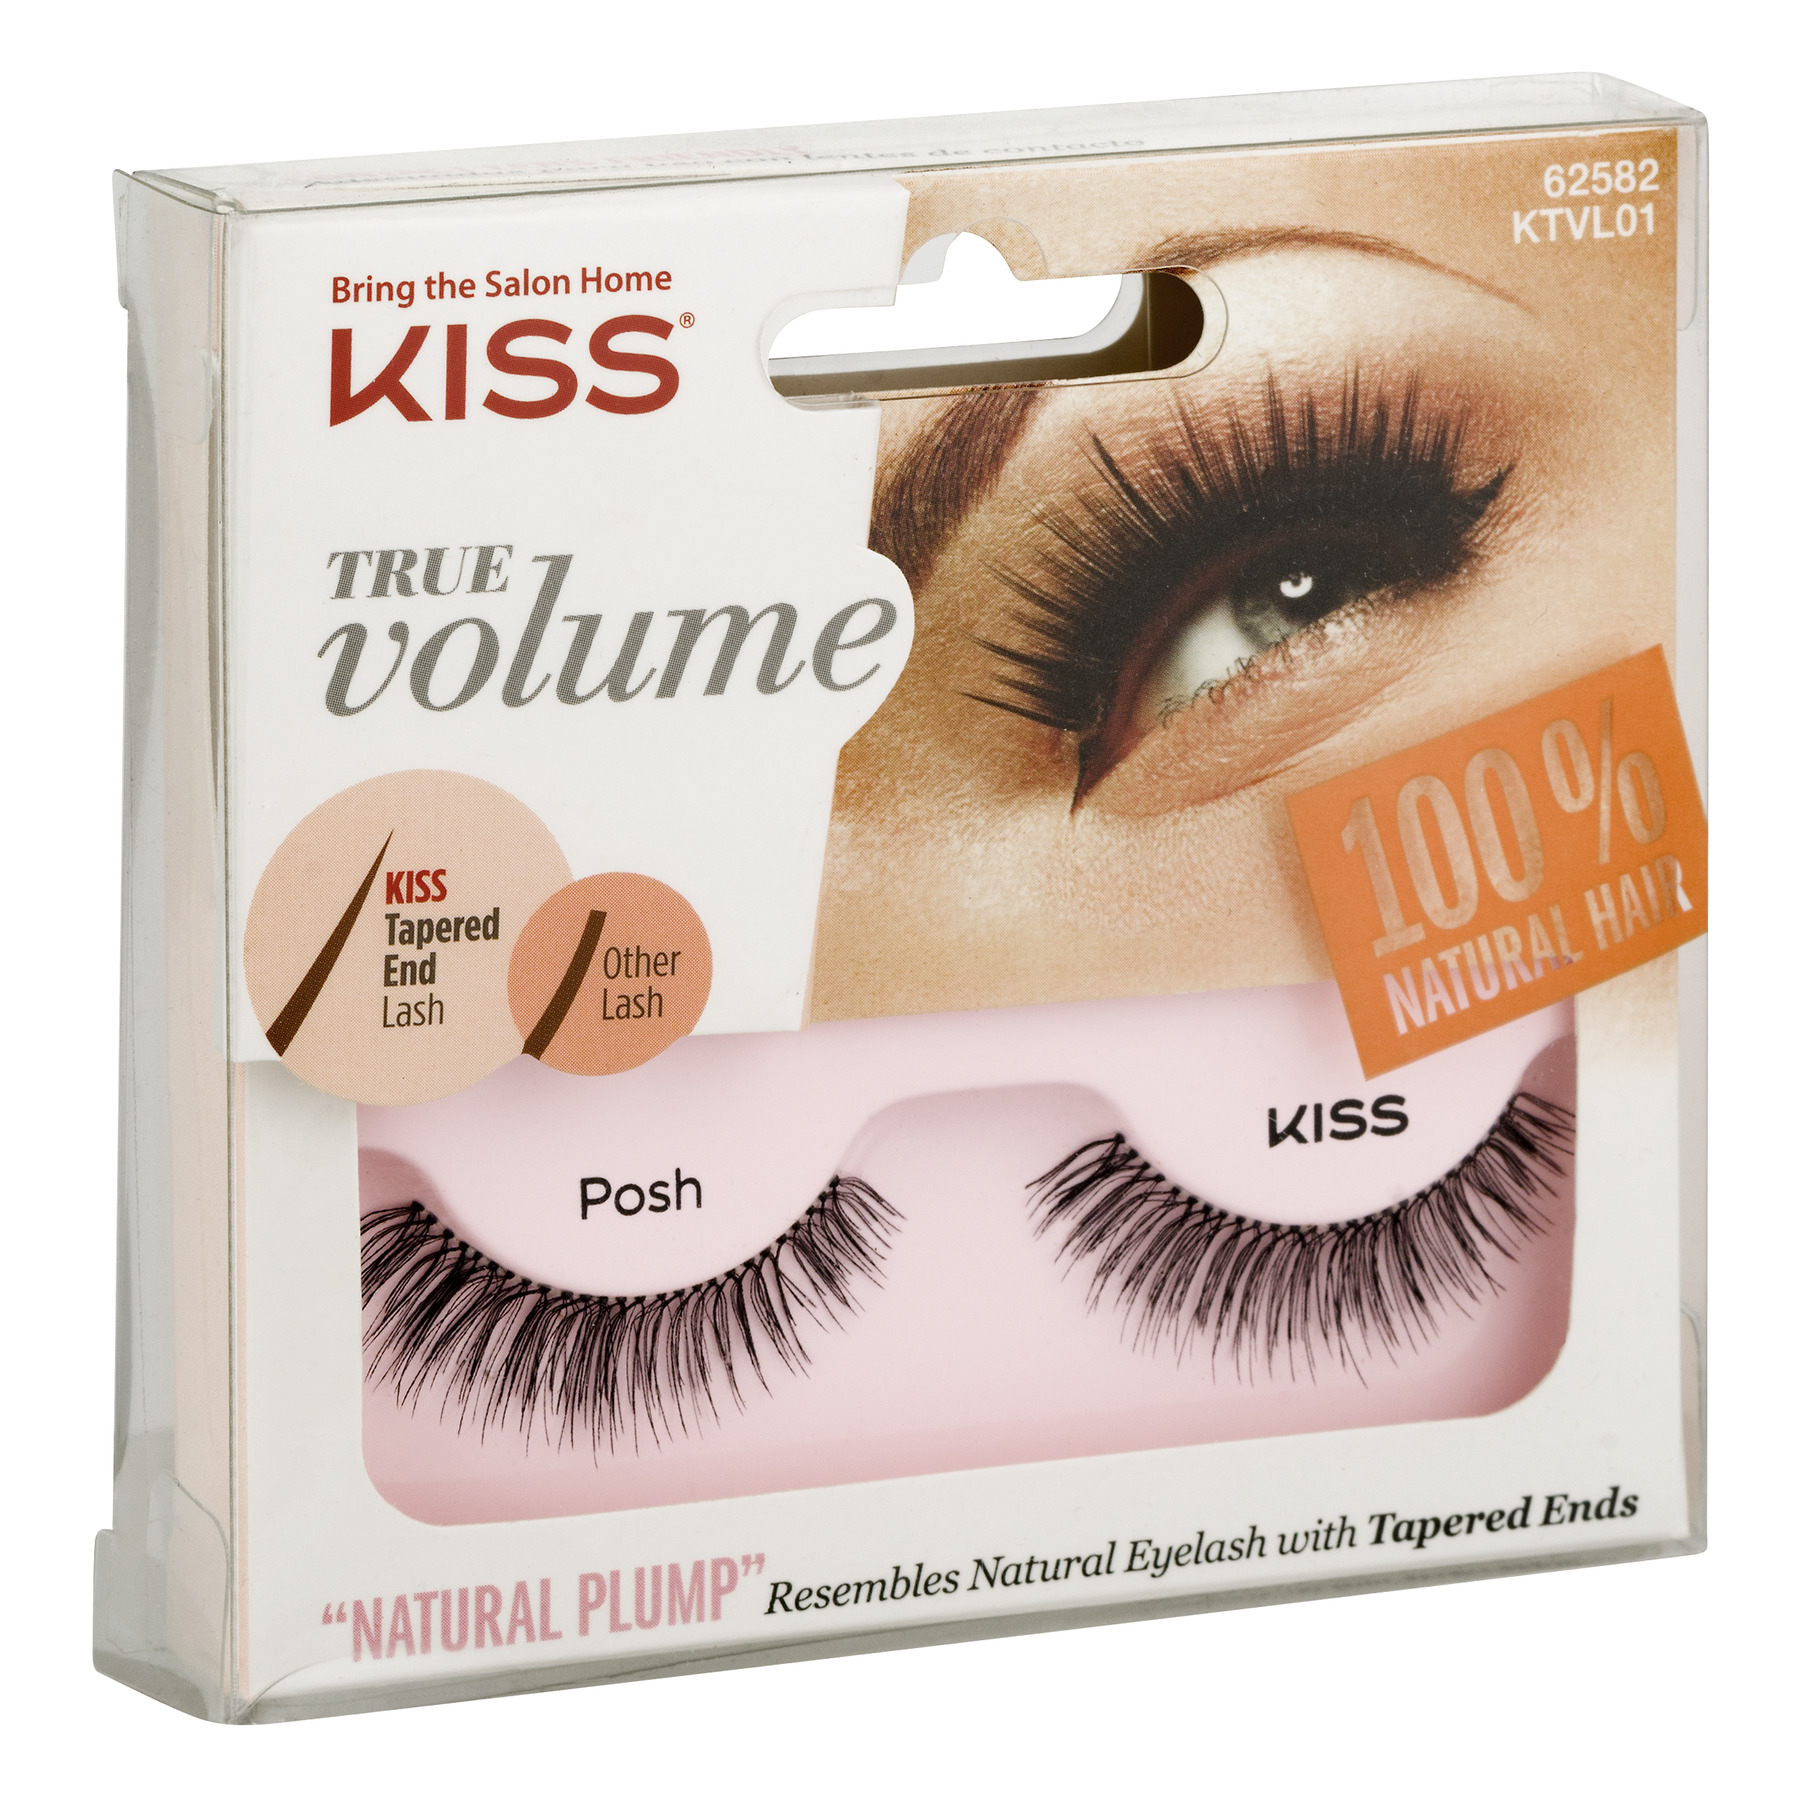 Kiss True Volume Natural Plump Eyelashes Posh Walmart